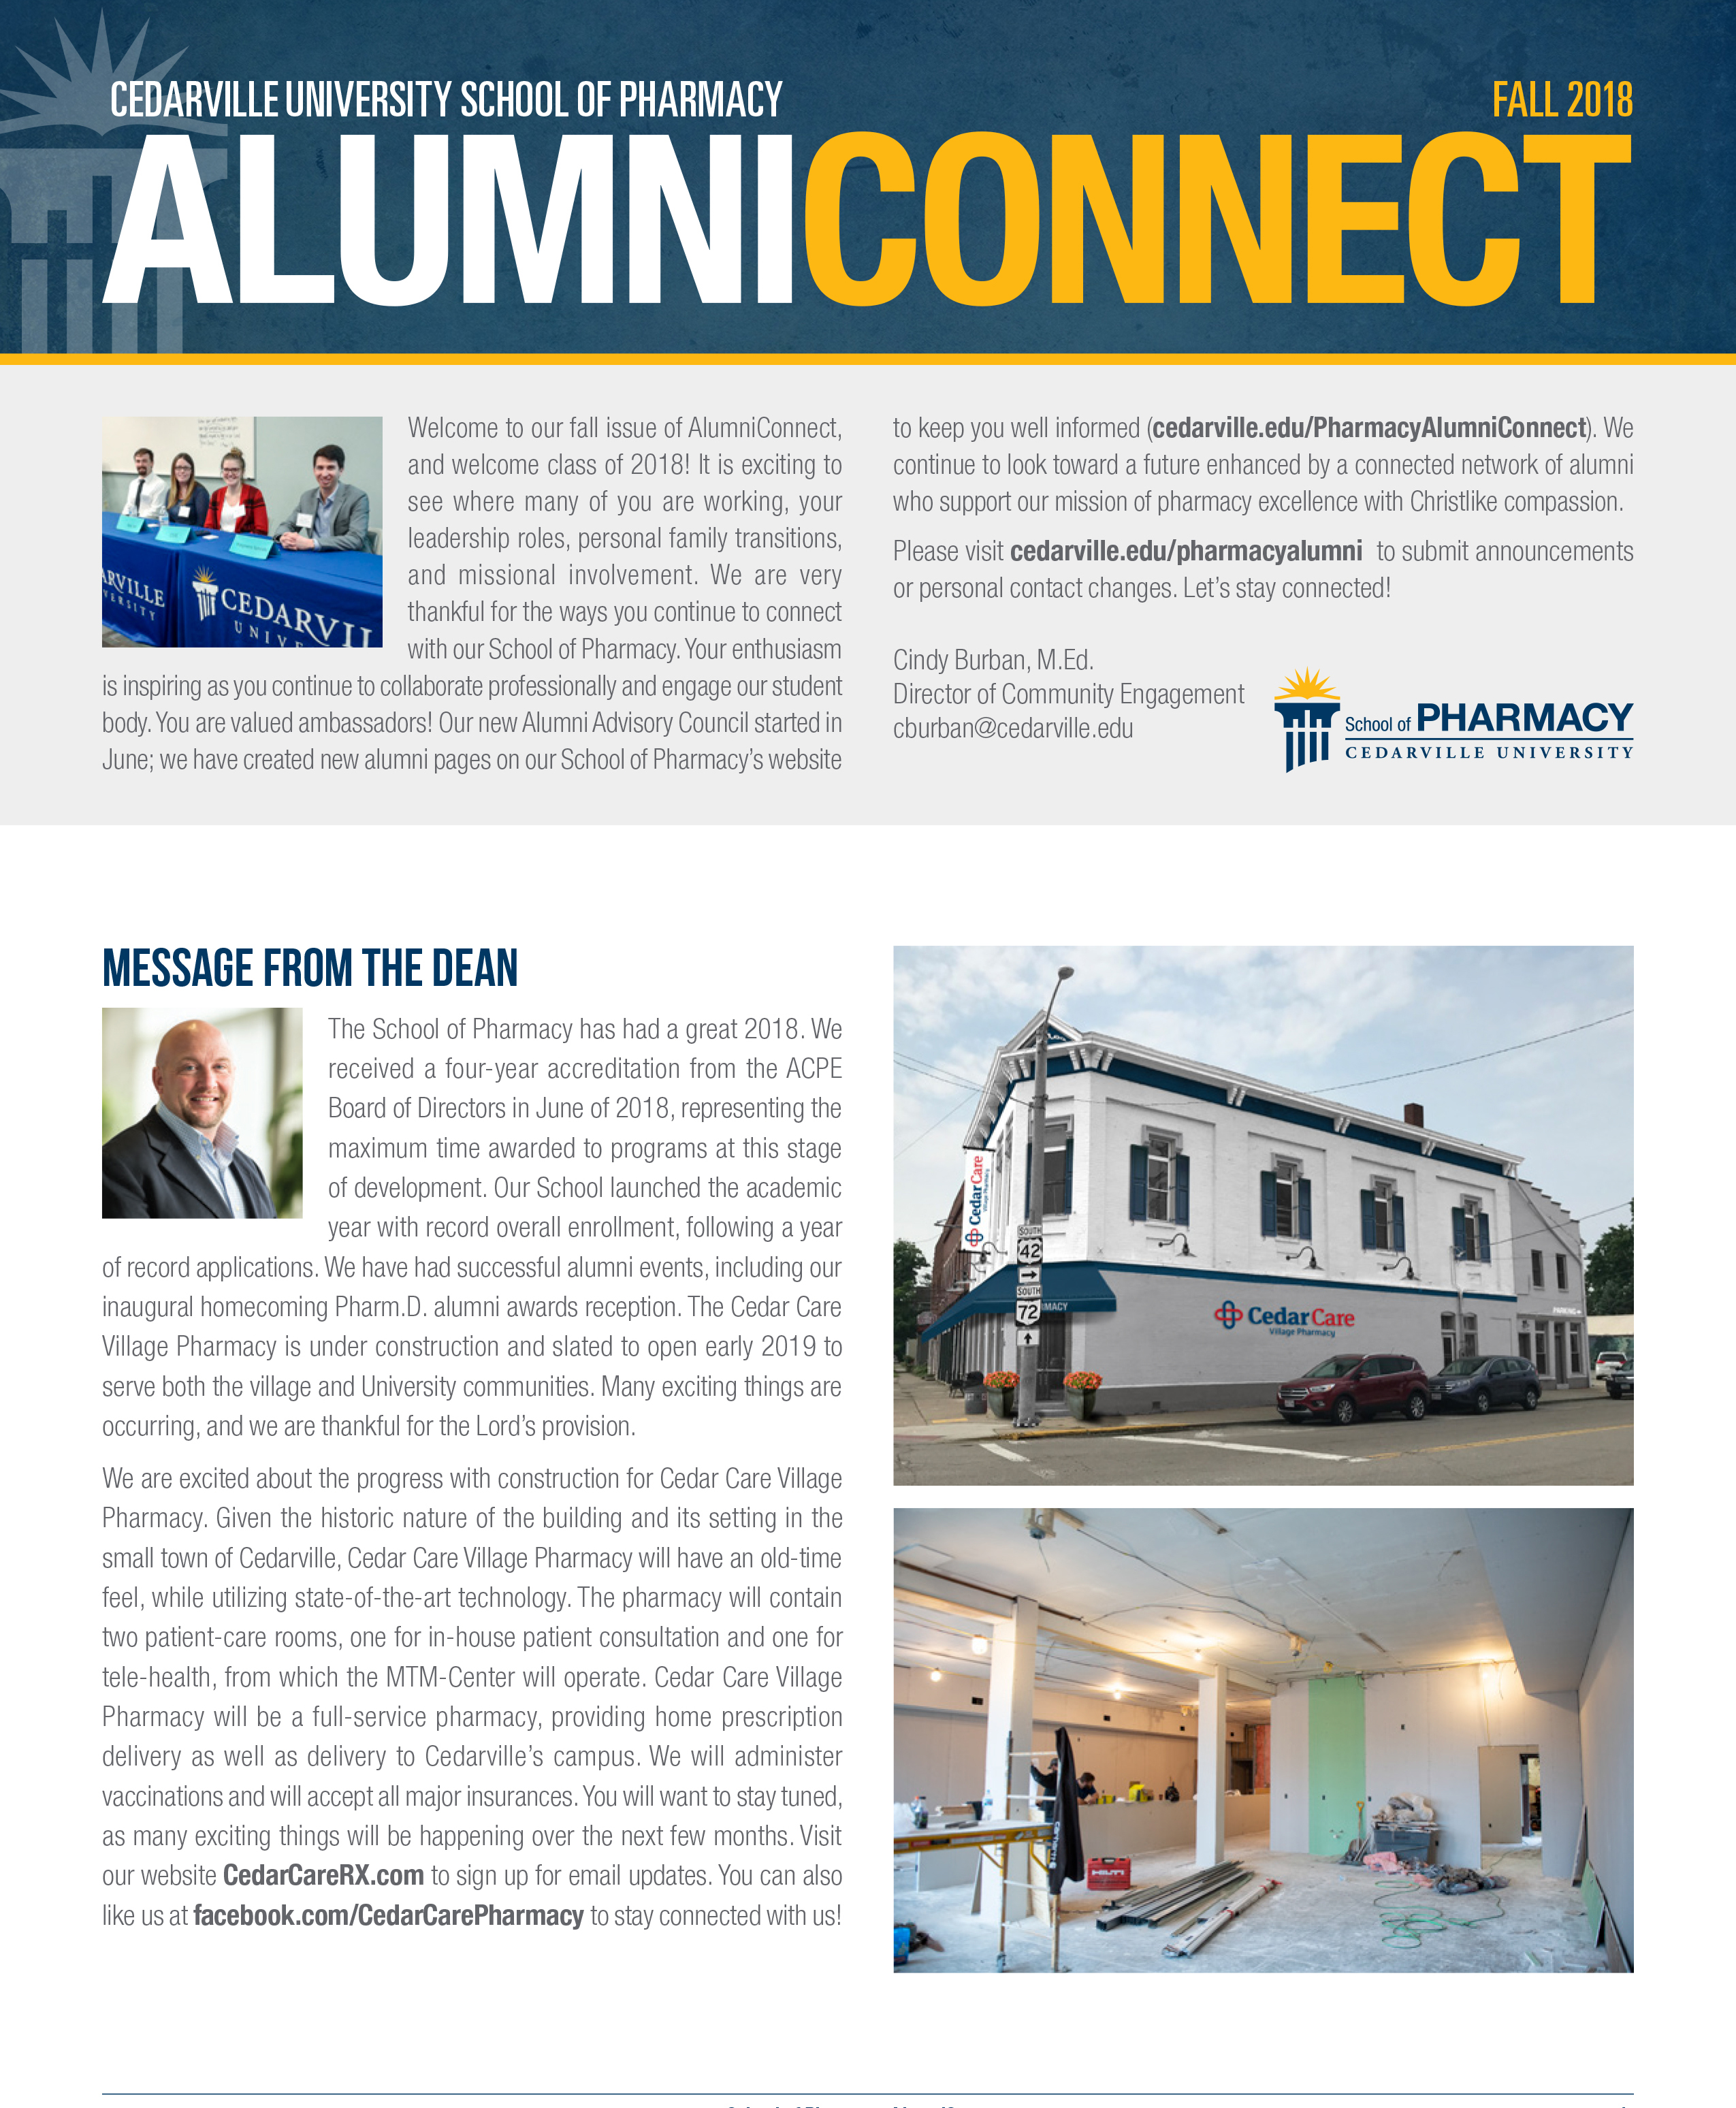 November 13, 2018 AlumniConnect Newsletter